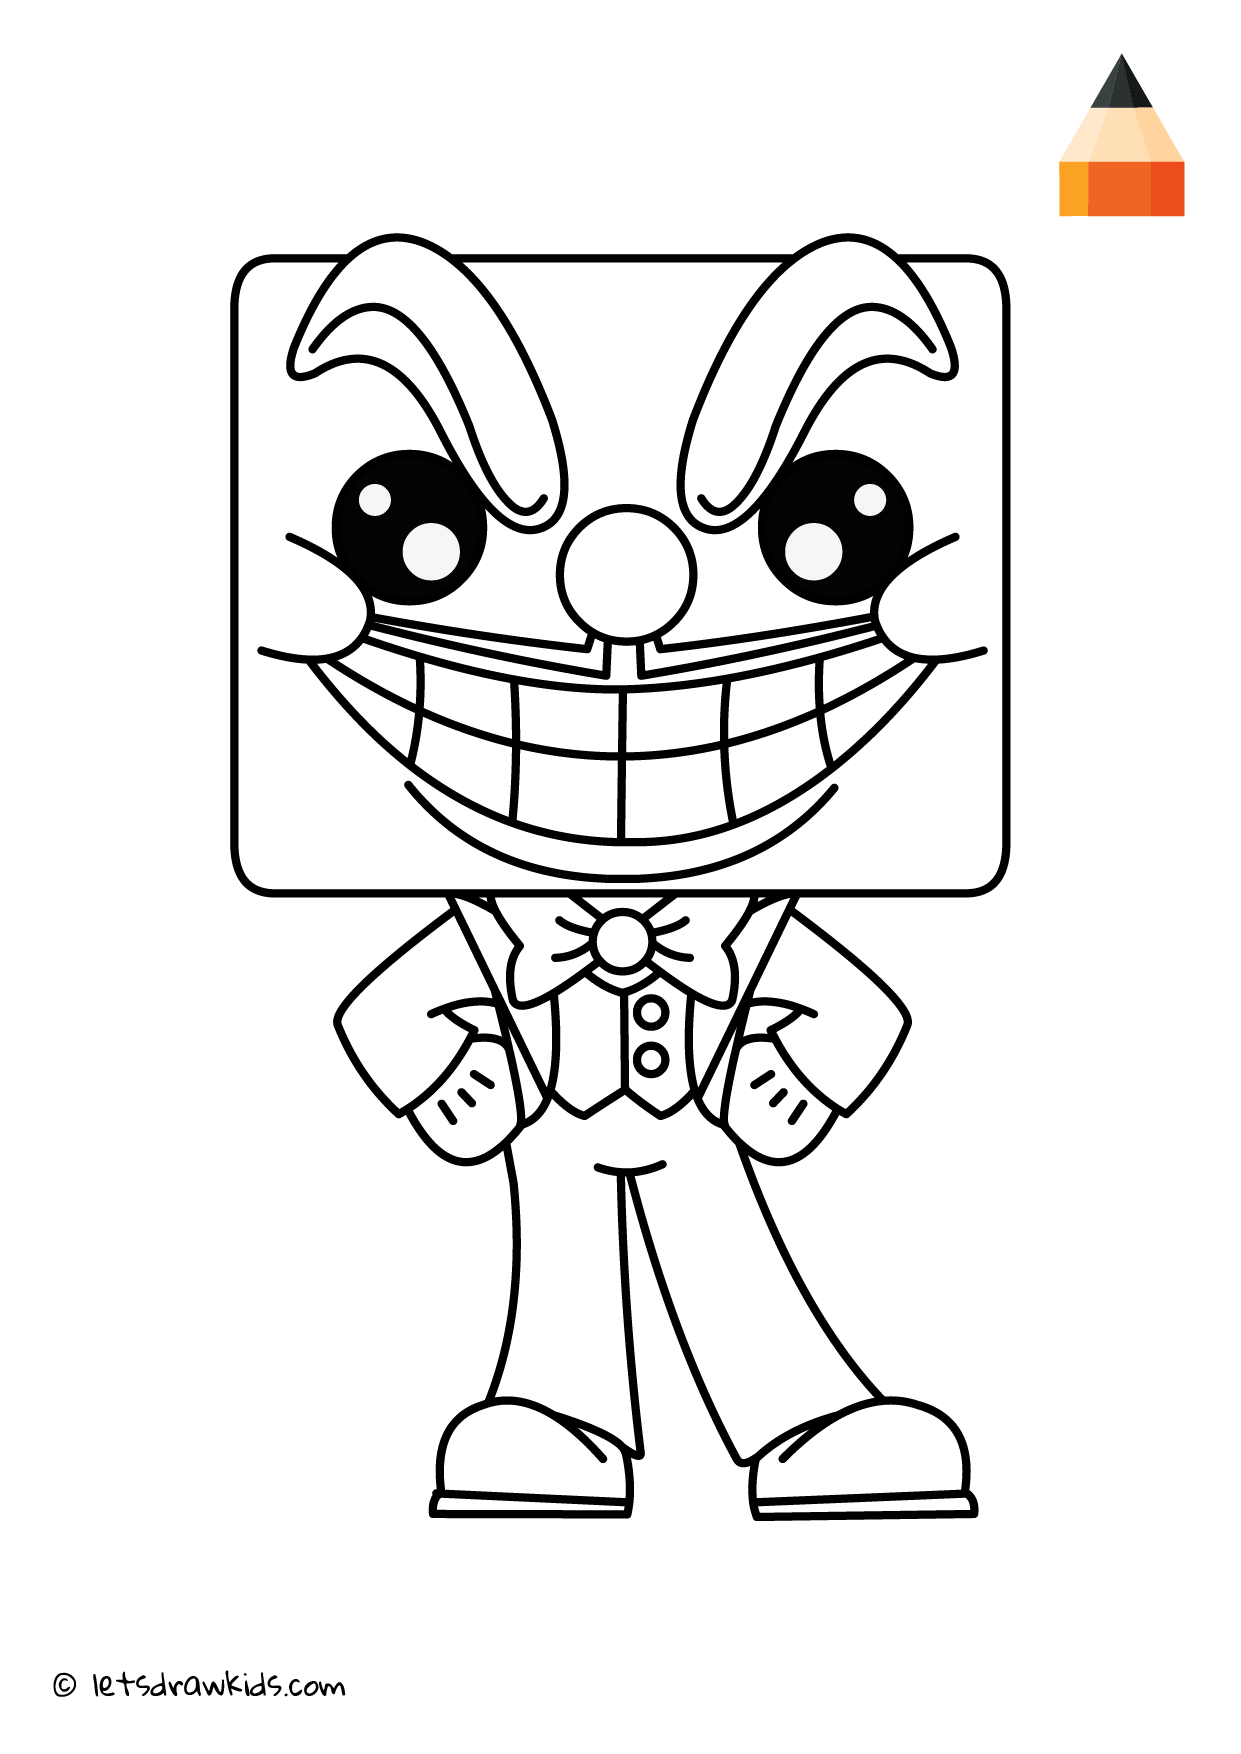 66 Top Colouring Pages Of Dice Download Free Images